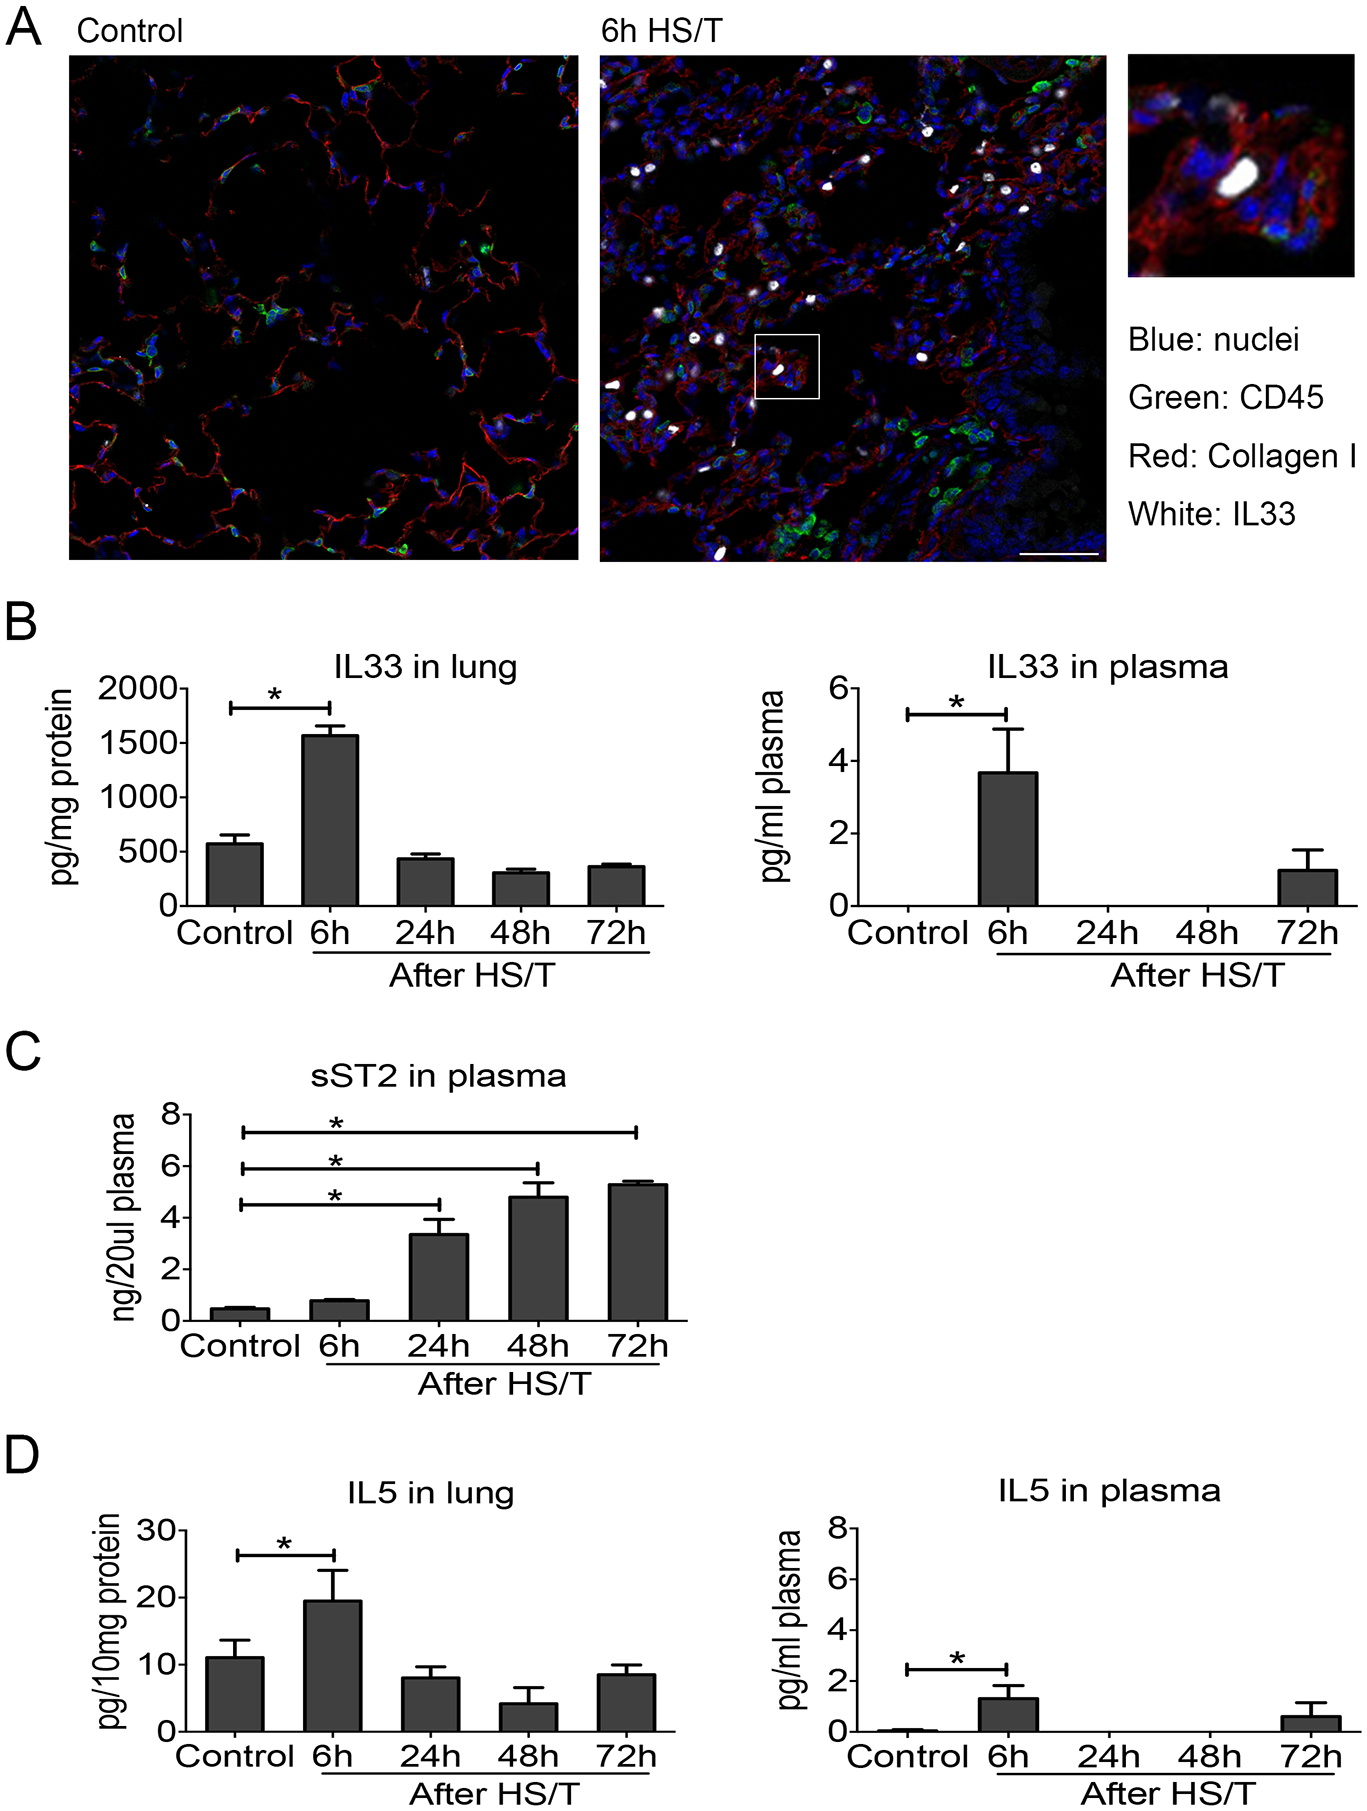 Change of interleukin (IL) 33 and type 2 cytokine IL5 in lung and plasma of mice after resuscitated hemorrhagic shock and tissue trauma (HS/T).